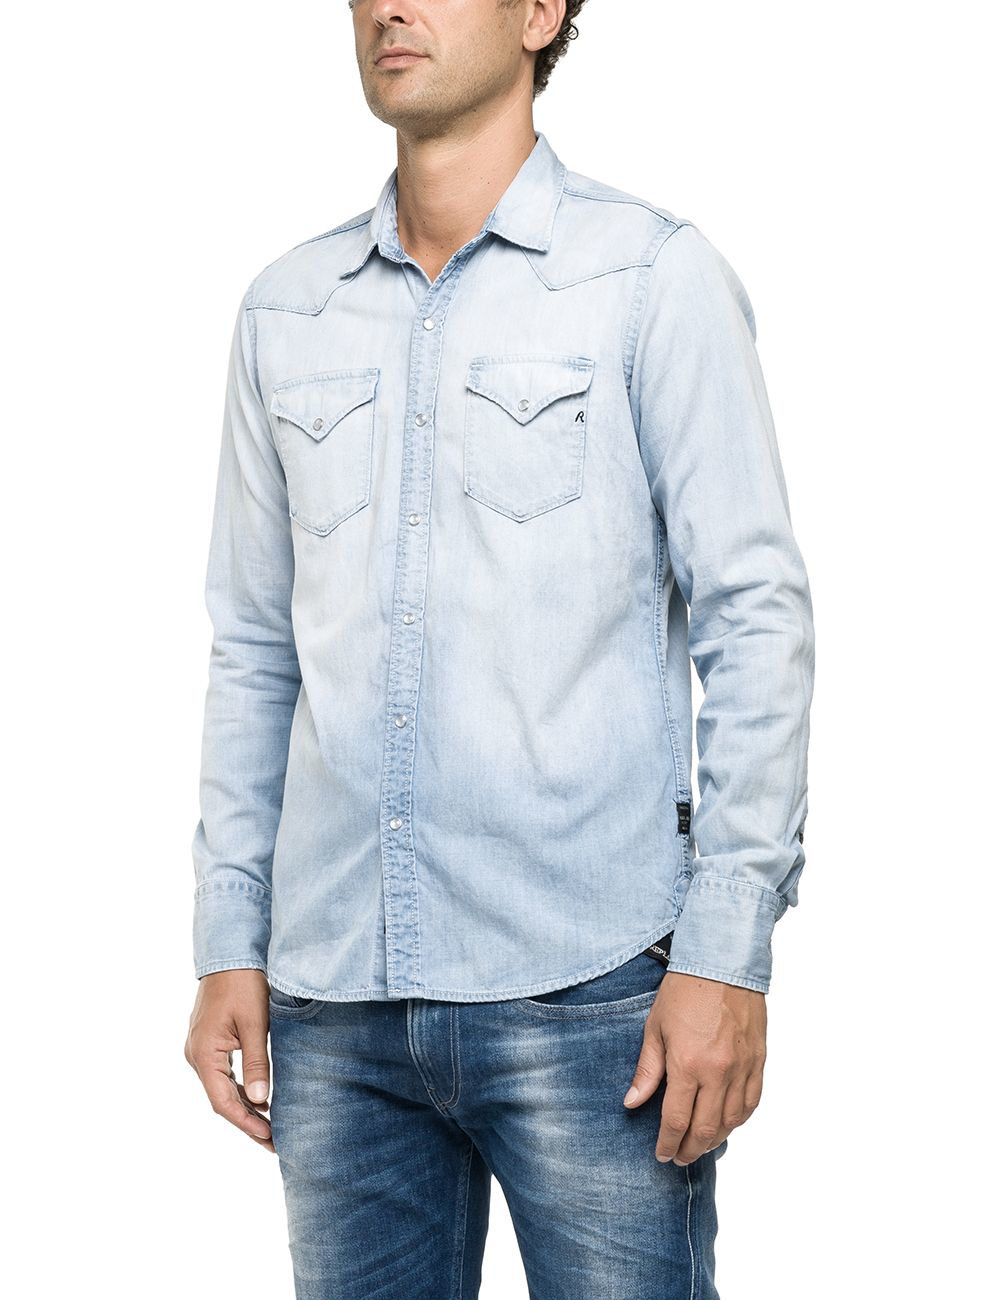 Lyst replay light blue denim shirt in blue for men for Replay blue jeans t shirt